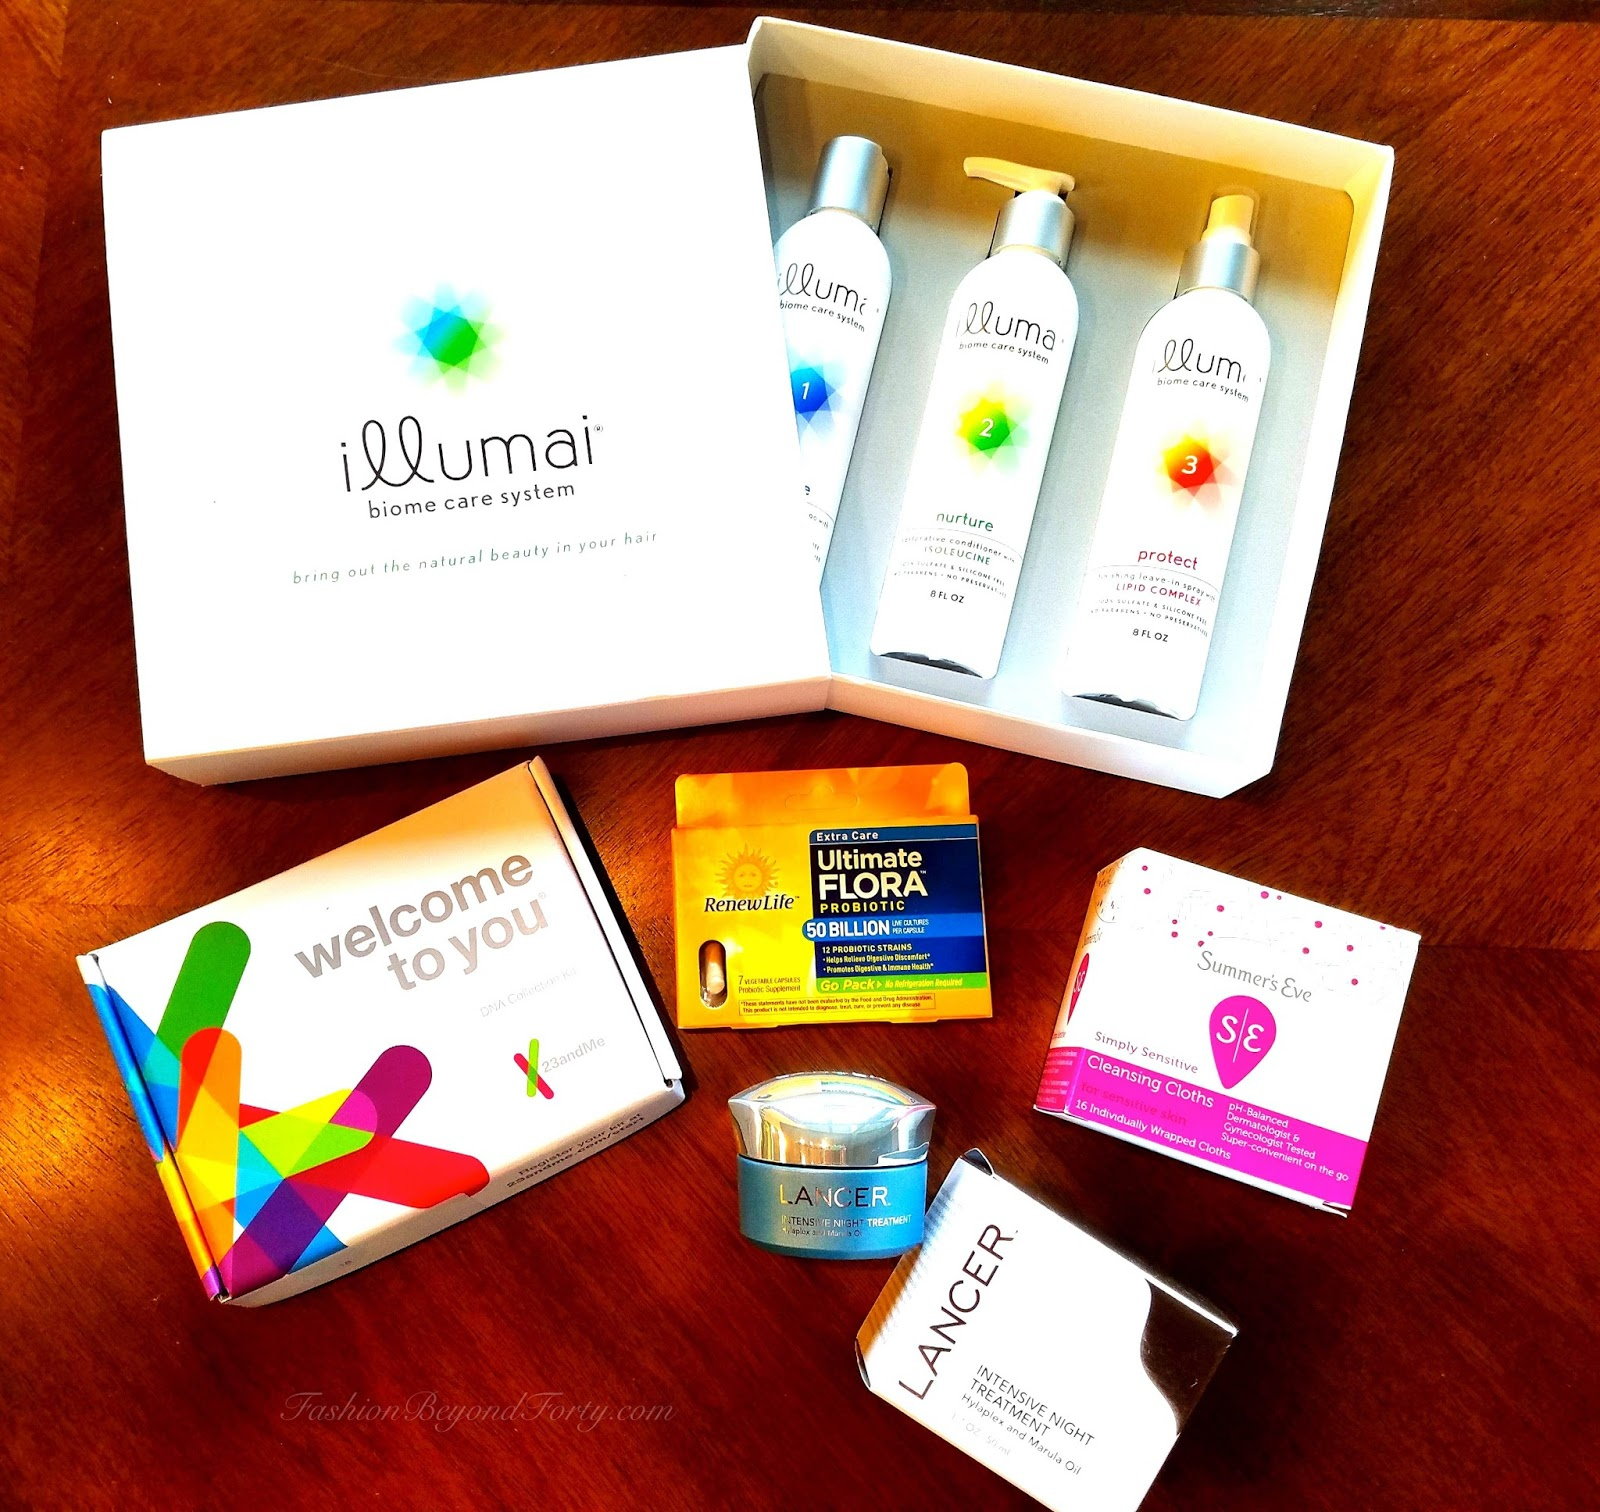 Women's Wellness Round Up Introducing Products I Love, And Products I Was Curious About Plus Discounts